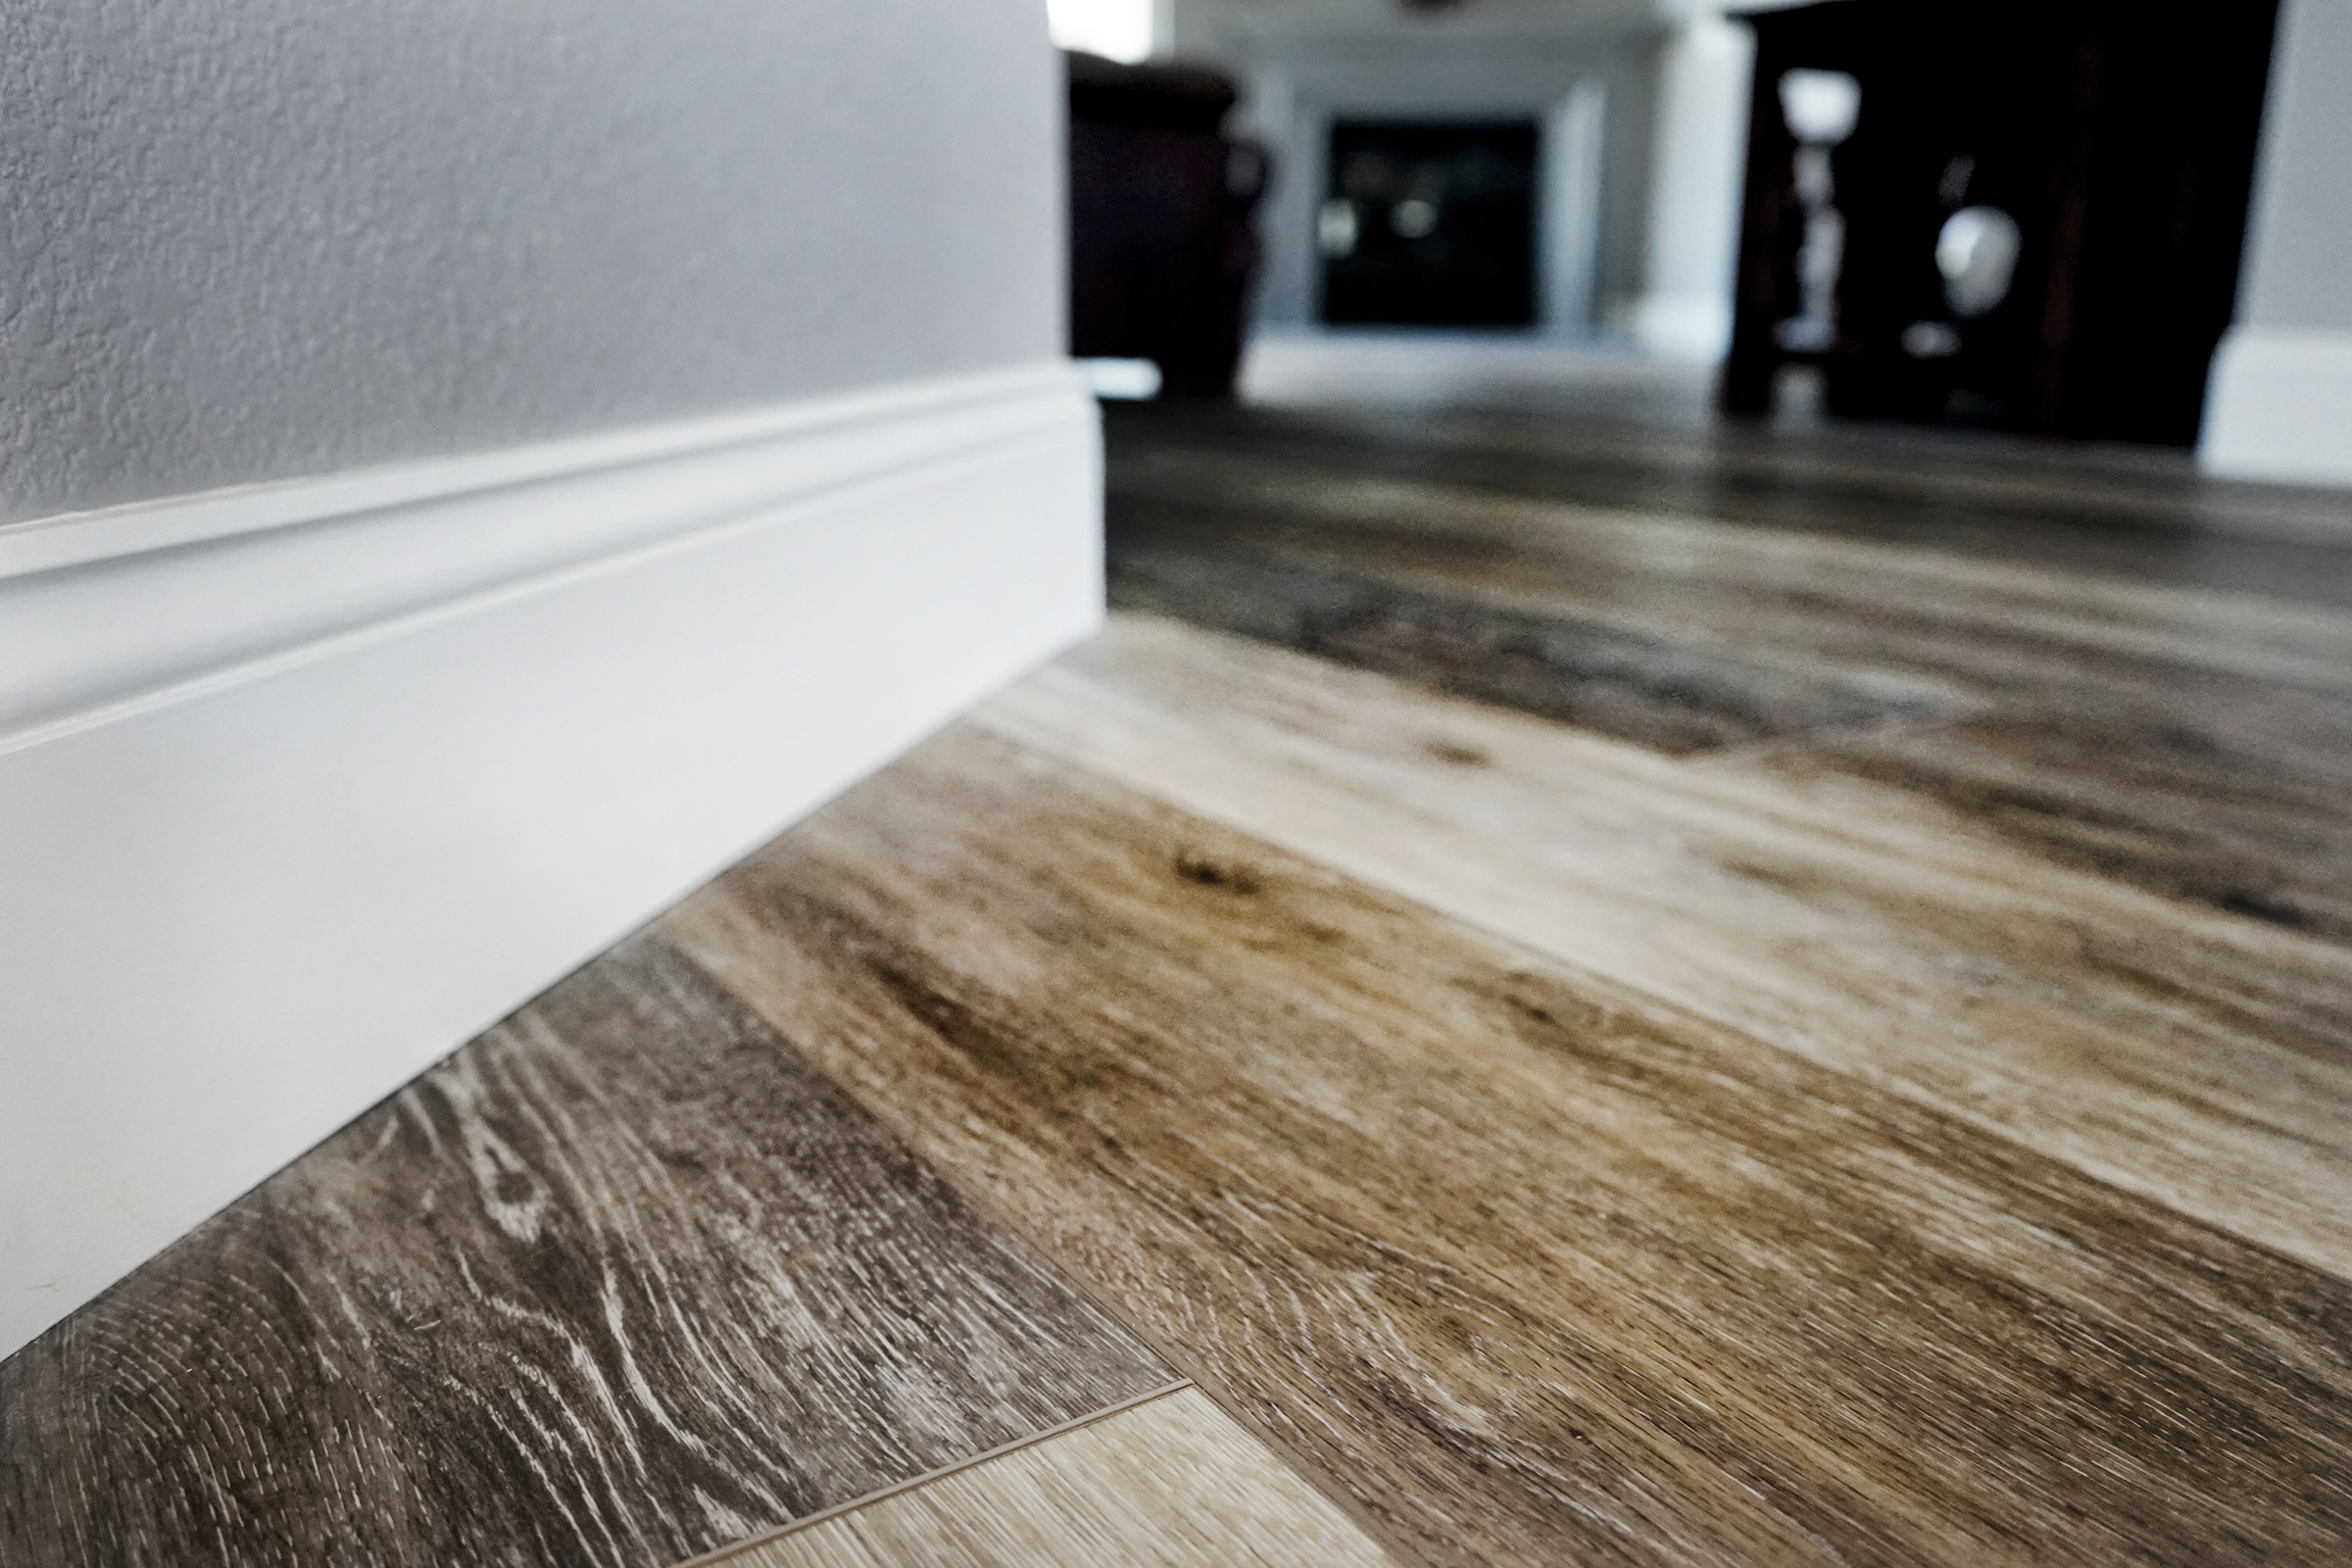 Paint & flooring by Jaureguy's. Come down to our showroom to check out paint, tile, wallpaper, and flooring samples!